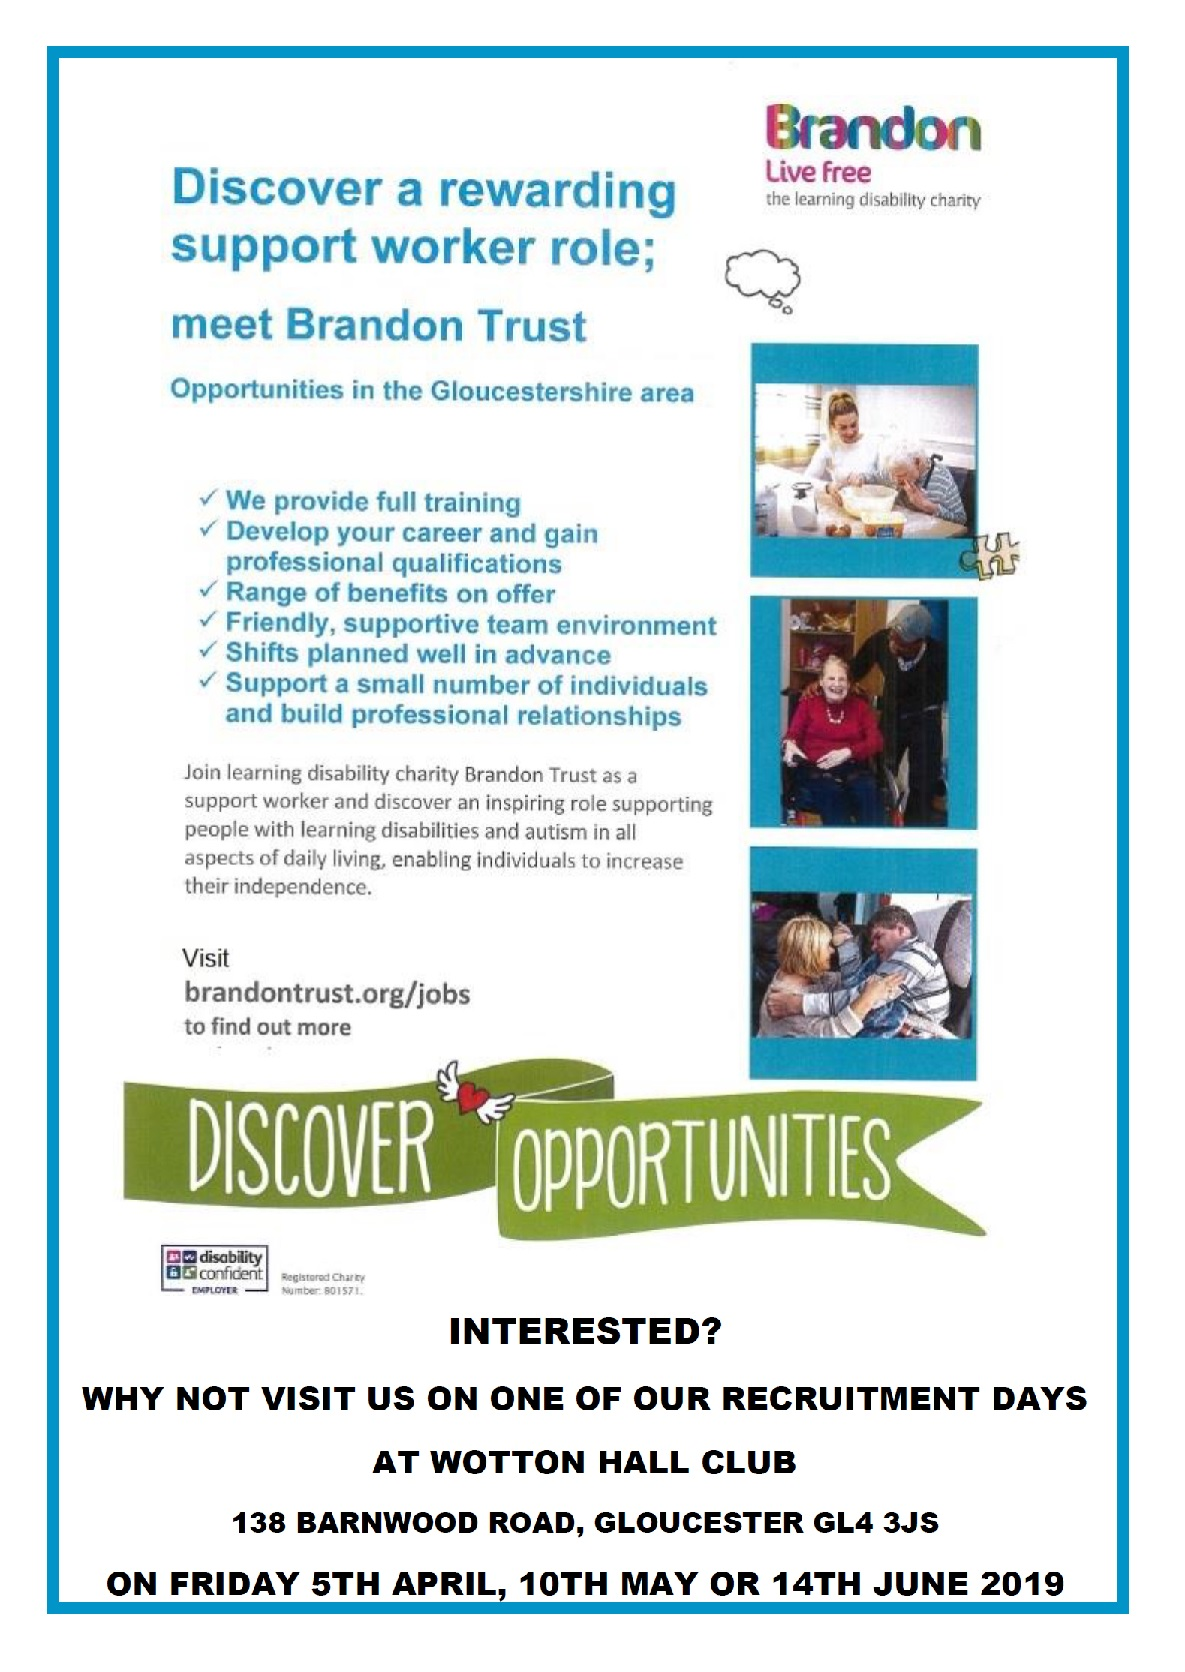 BRANDON TRUST Information Recruitment events on 5th April 10th May 14th June 2019